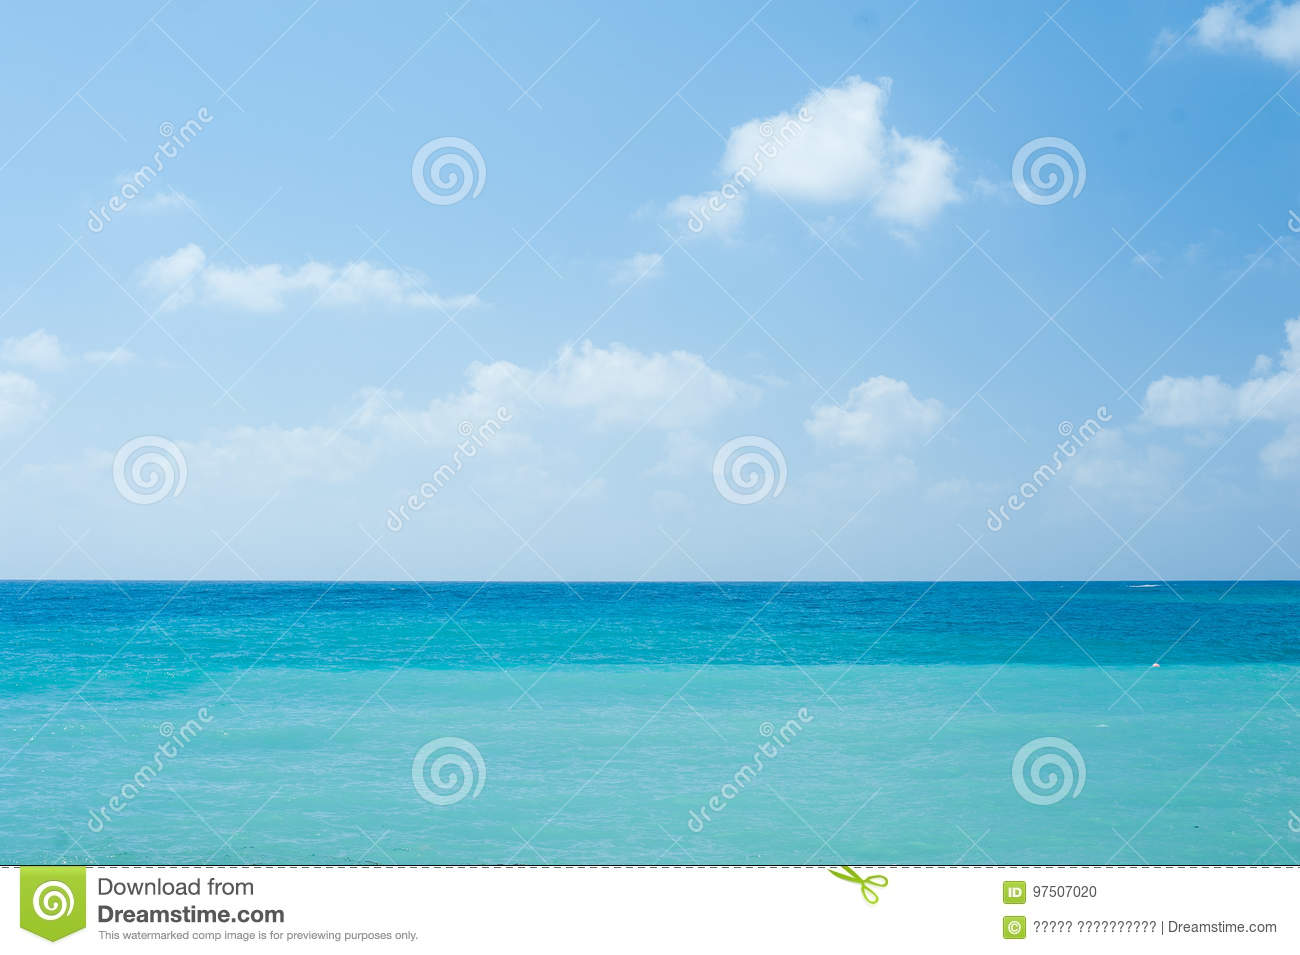 Perfect tropical white sandy beach and turquoise clear ocean water - summer vacation natural background with blue sunny sky